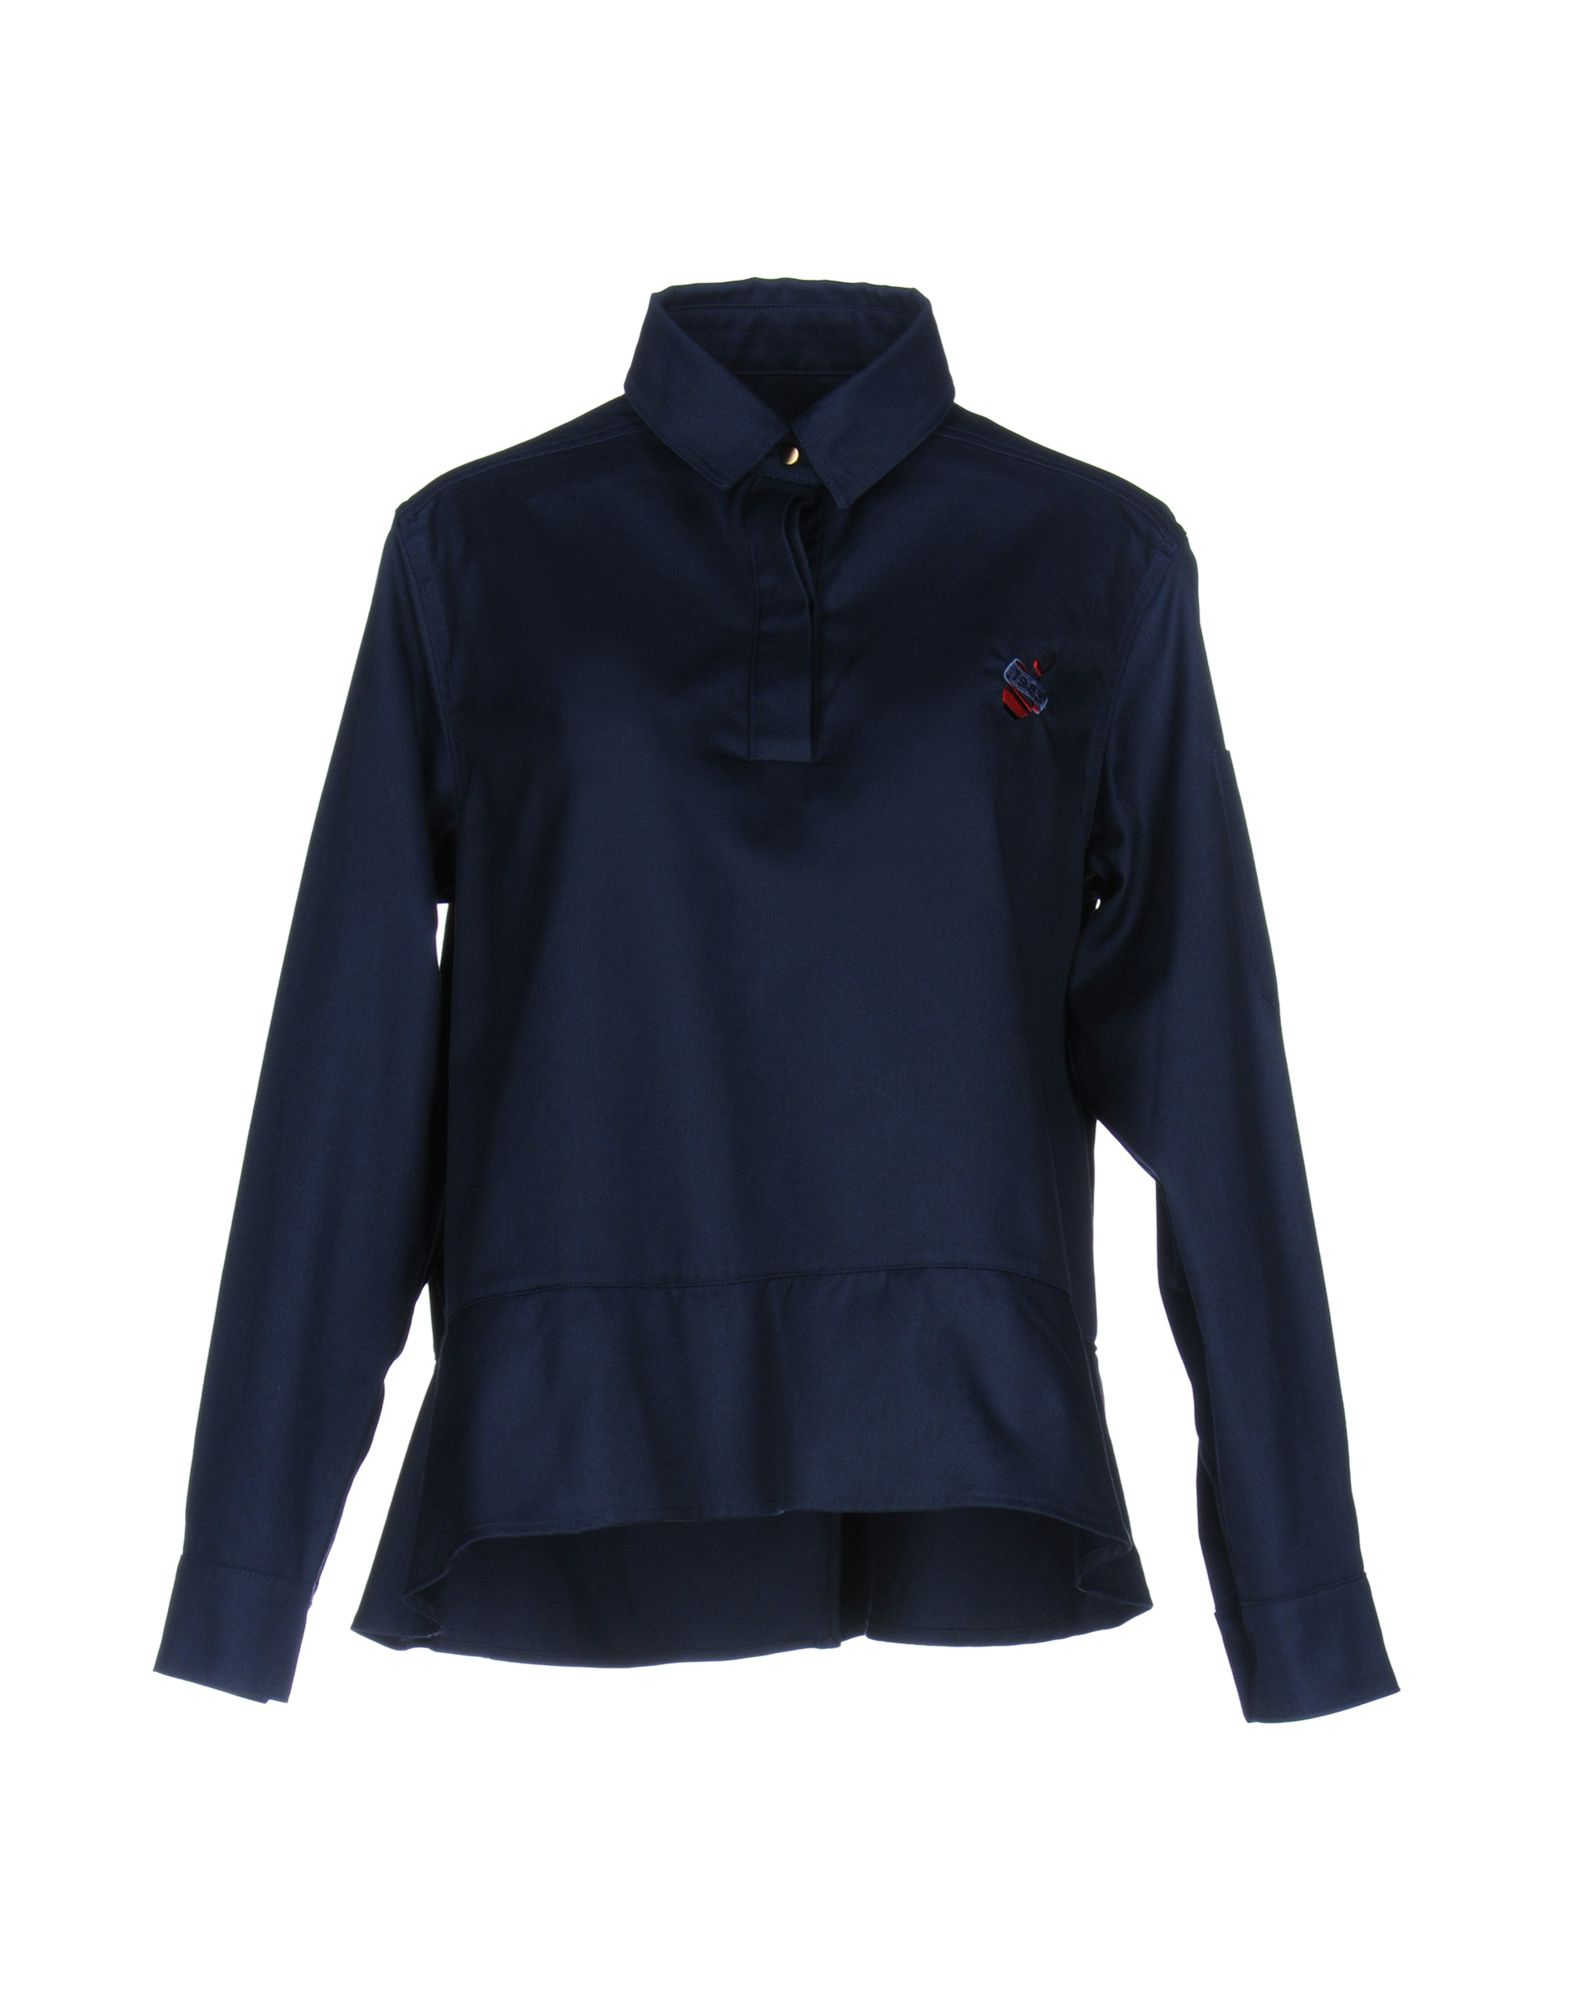 J.WON Solid Color Shirts & Blouses in Dark Blue